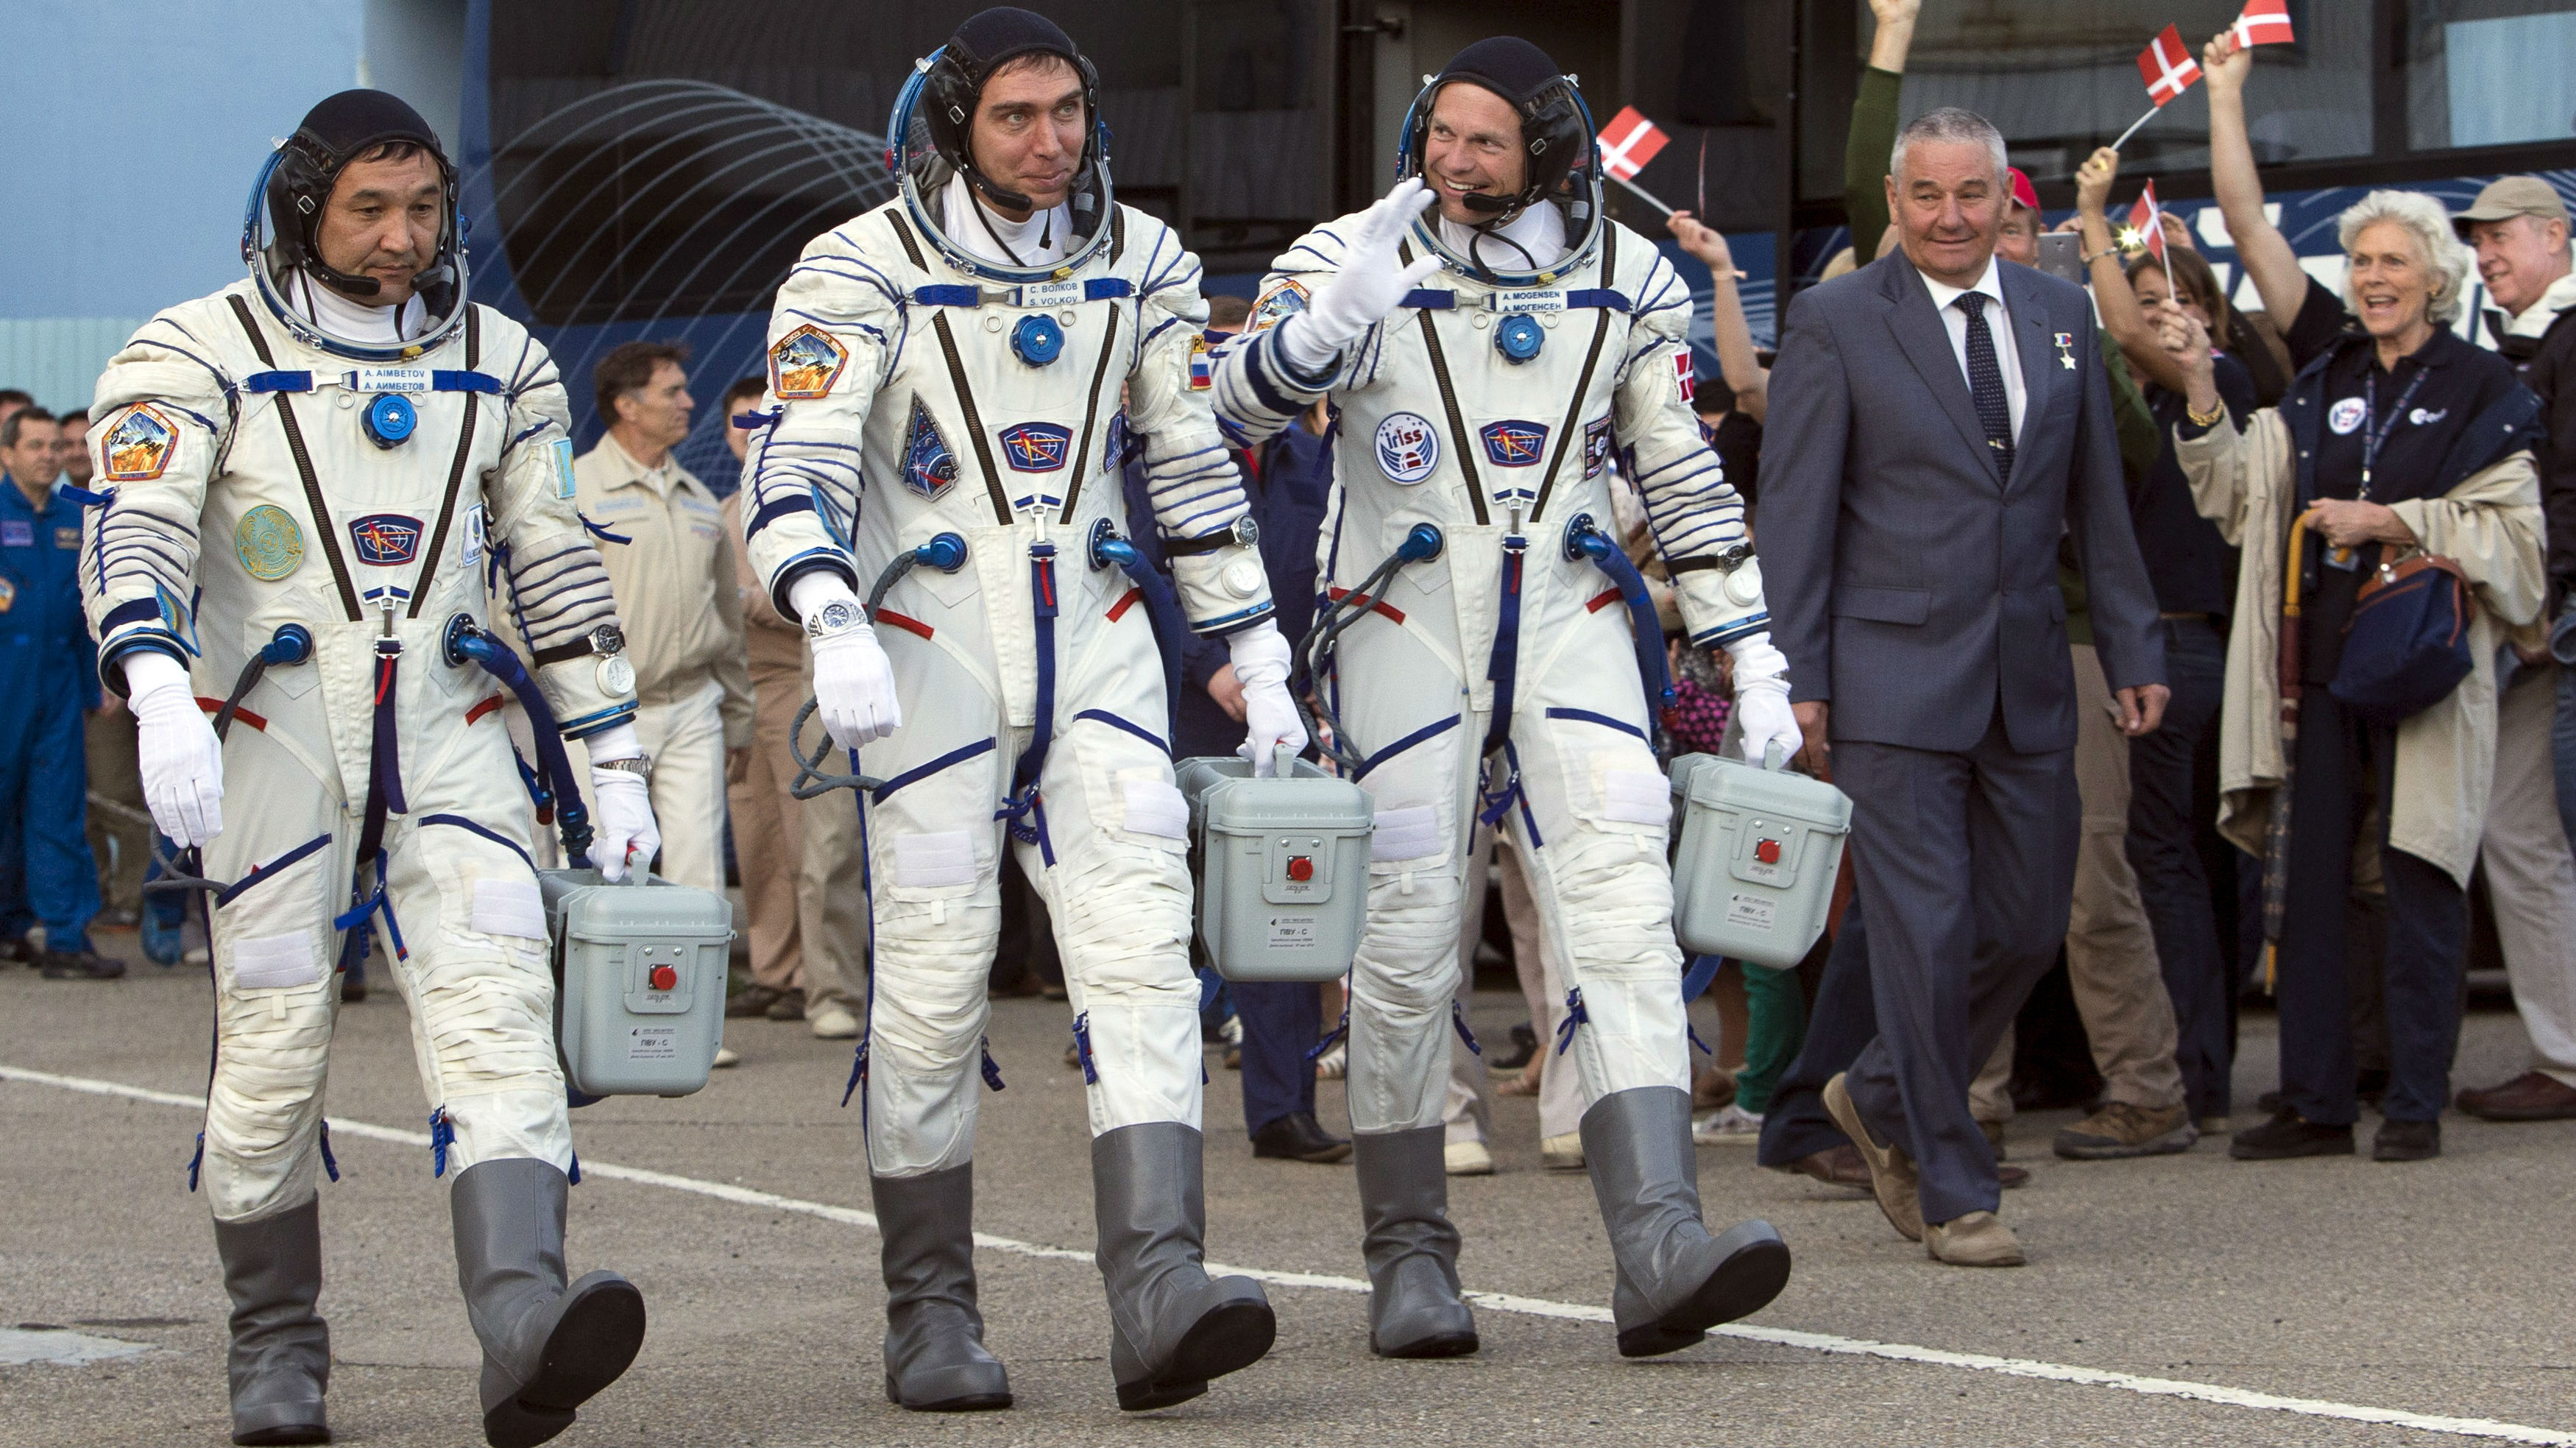 Crew members (L-R) Aidyn Aimbetov of Kazakhstan, Sergei Volkov of Russia and Andreas Mogensen of Denmark walk after donning space suits at the Baikonur cosmodrome, Kazakhstan, September 2, 2015.